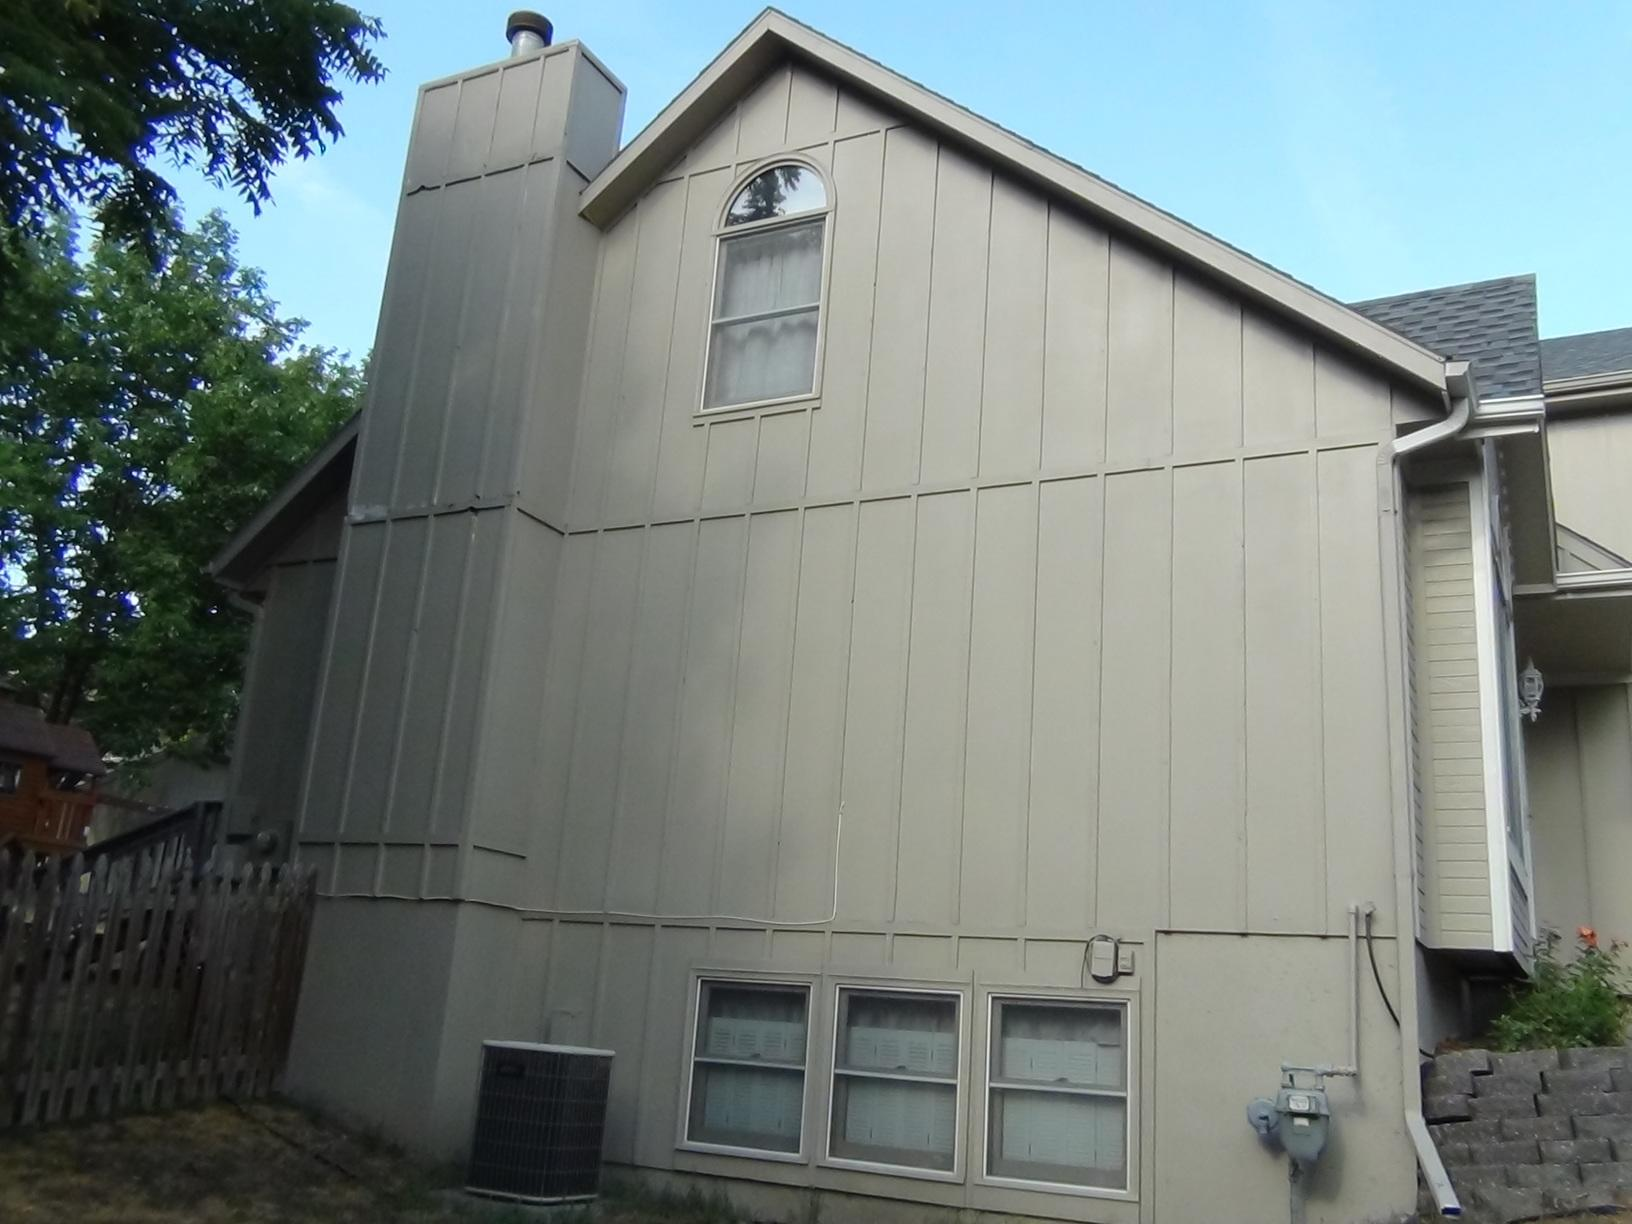 Installation of Siding and new windows in Overland Park, KS